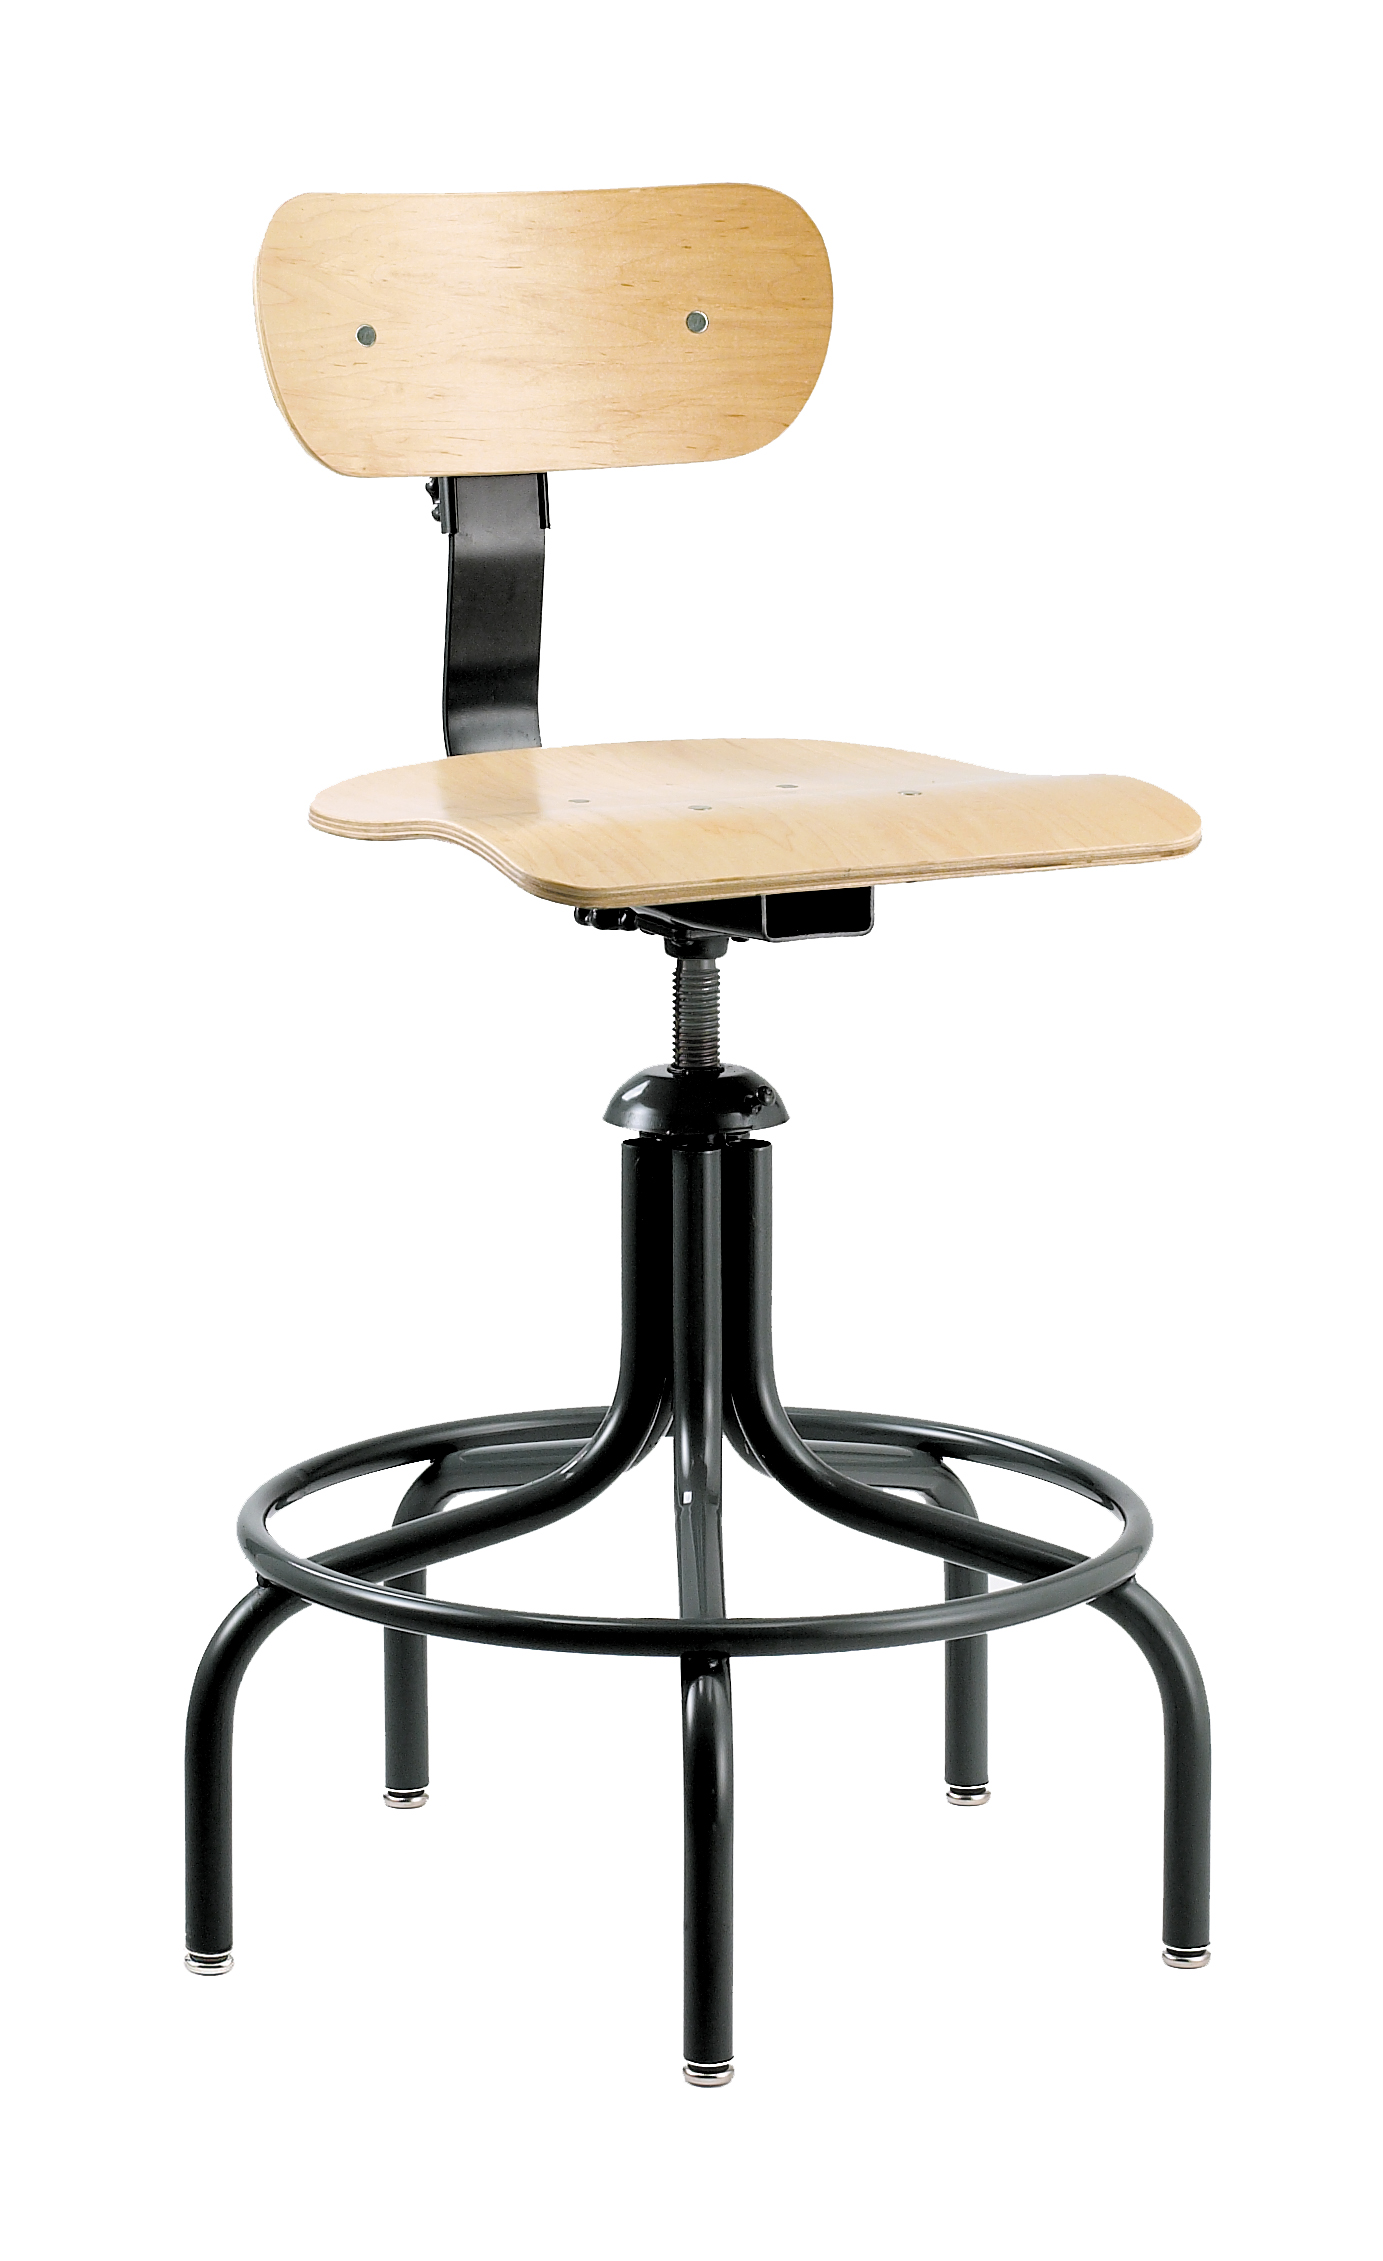 minimal chair height stand test john lewis deck covers bevco 1500 5 leg swivel ii plywood w glides